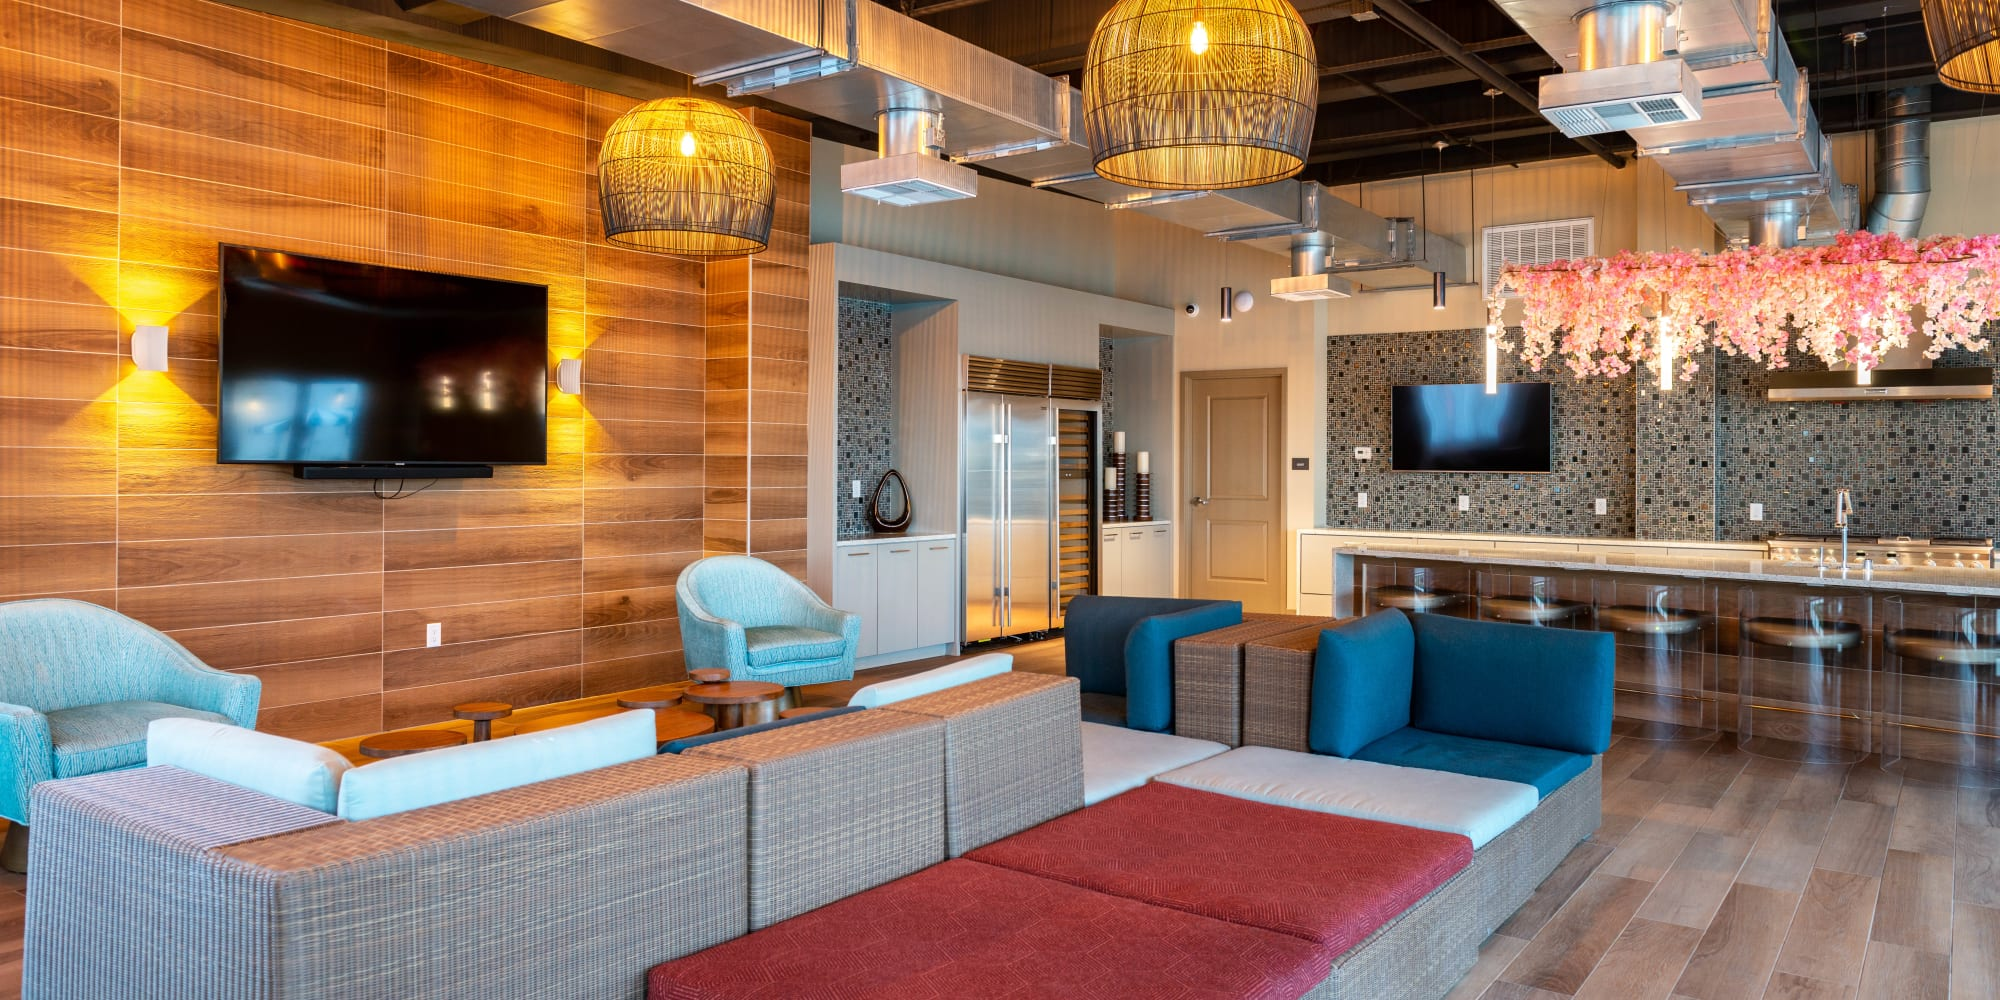 Luxurious resident clubhouse lounge with flatscreen TVs at Fusion Apartments in Irvine, California